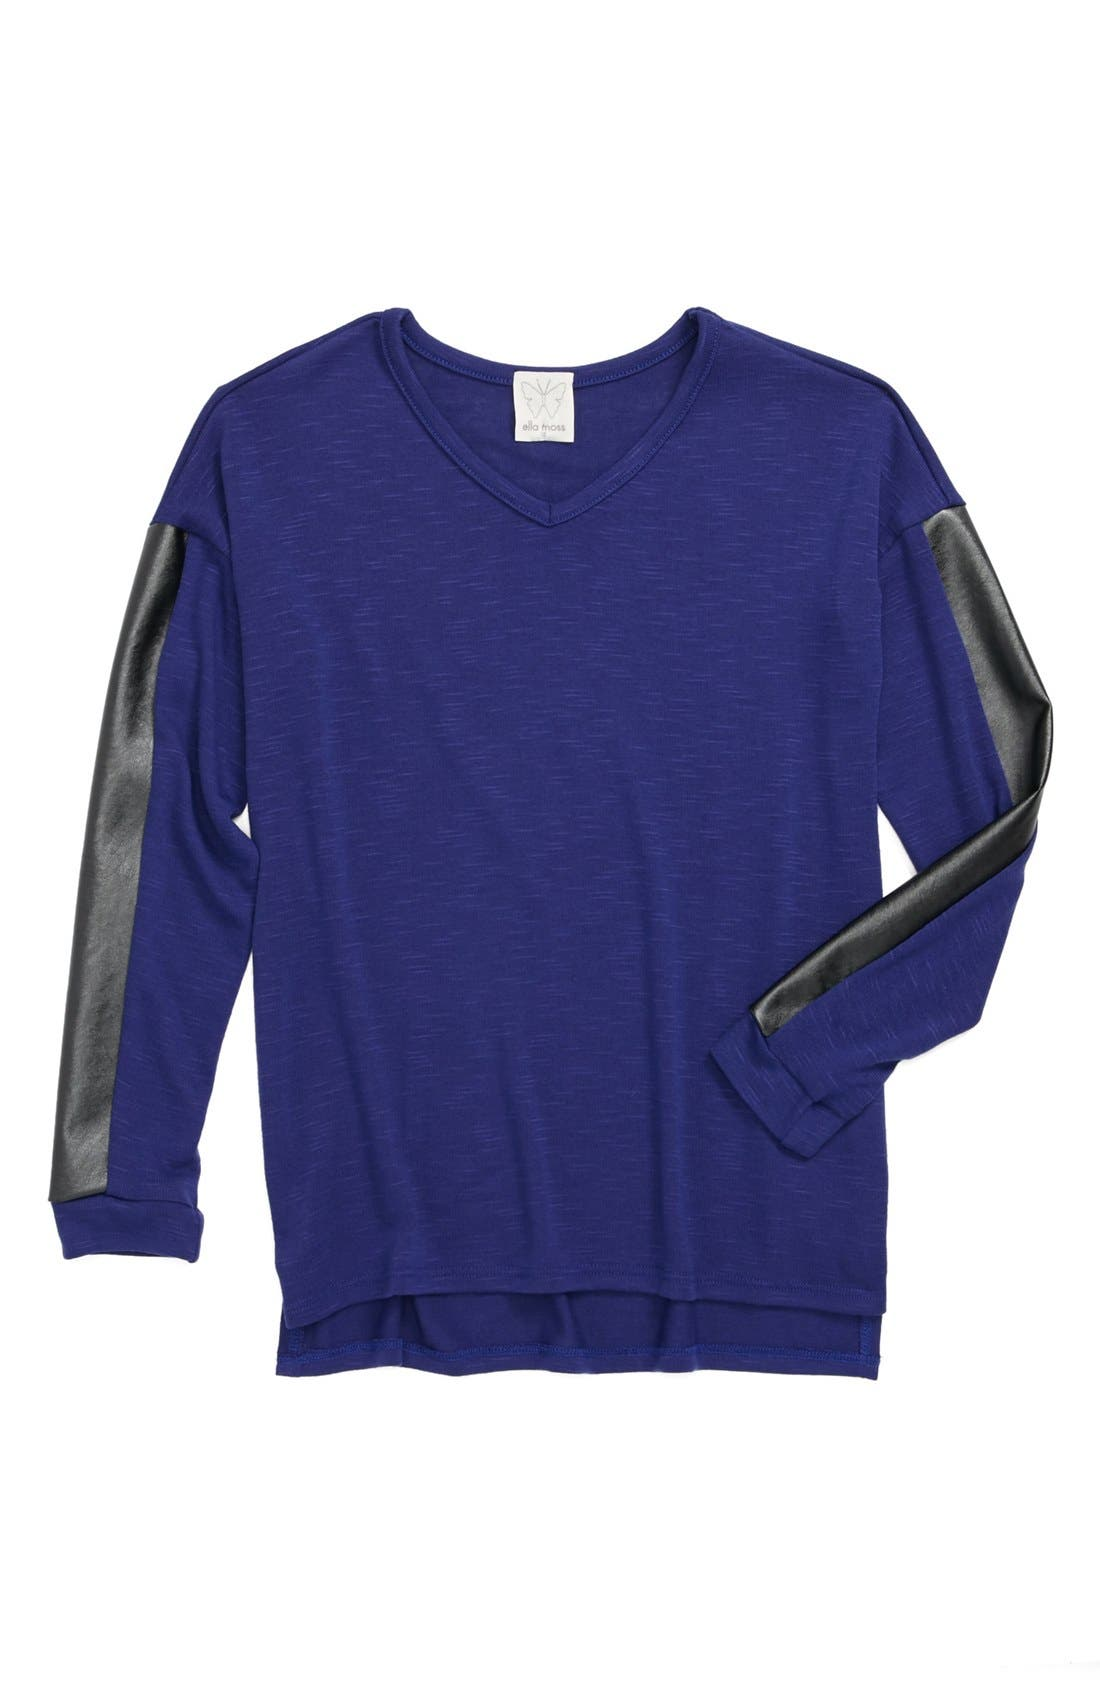 Alternate Image 1 Selected - Ella Moss Faux Leather Panel Long Sleeve Top (Big Girls)